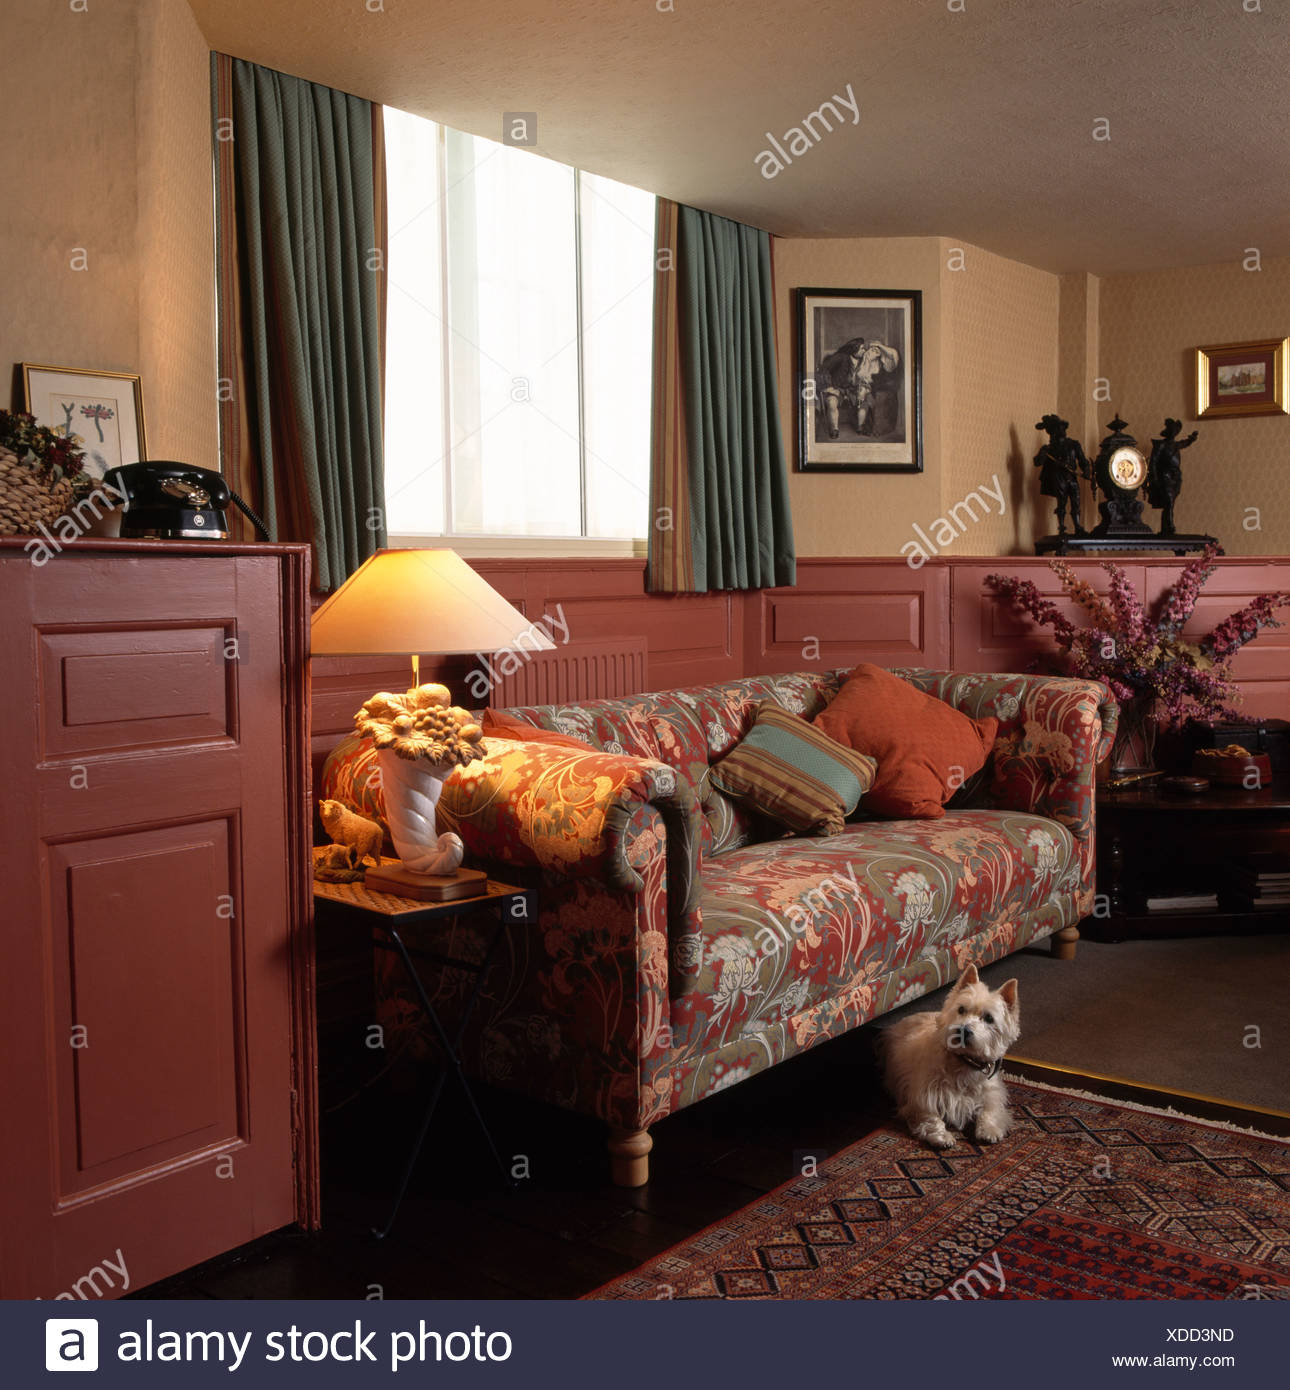 Small White Dog In Eighties Living Room With Patterned Chesterfield Sofa  And Brown Half Panelling On Walls